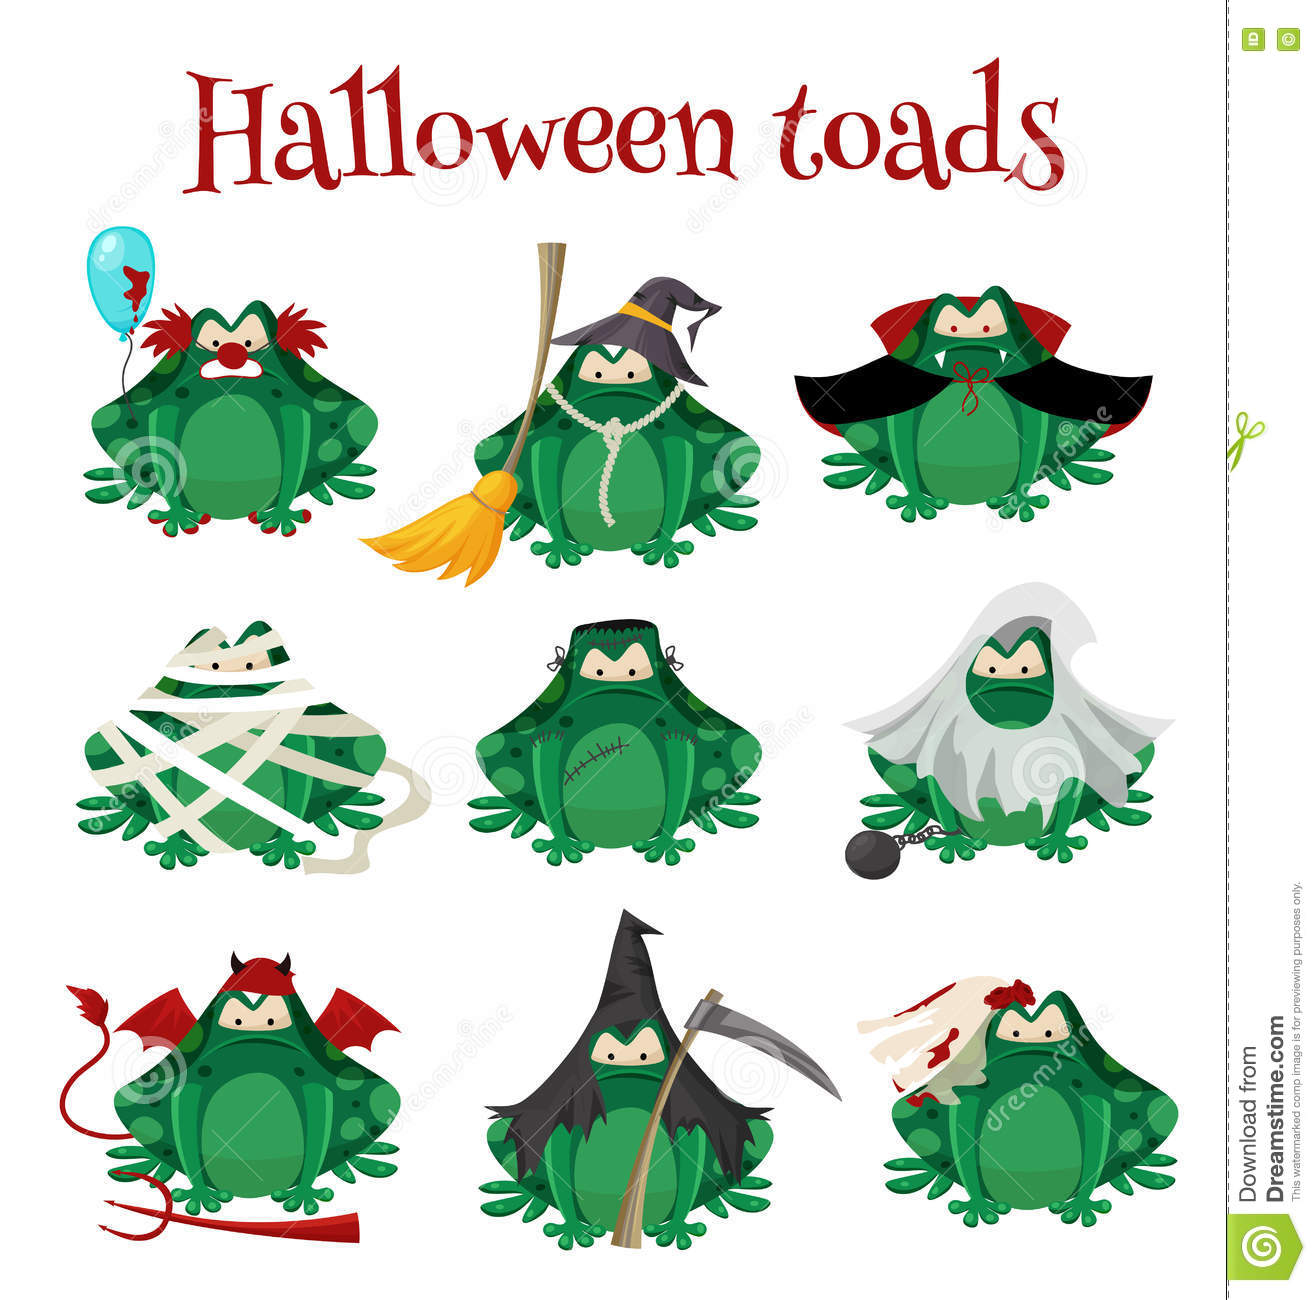 frogs or toads cartoon characters vector illustration cartoondealer com 24397744 Cute Frog Silhouette Cute Frog Silhouette